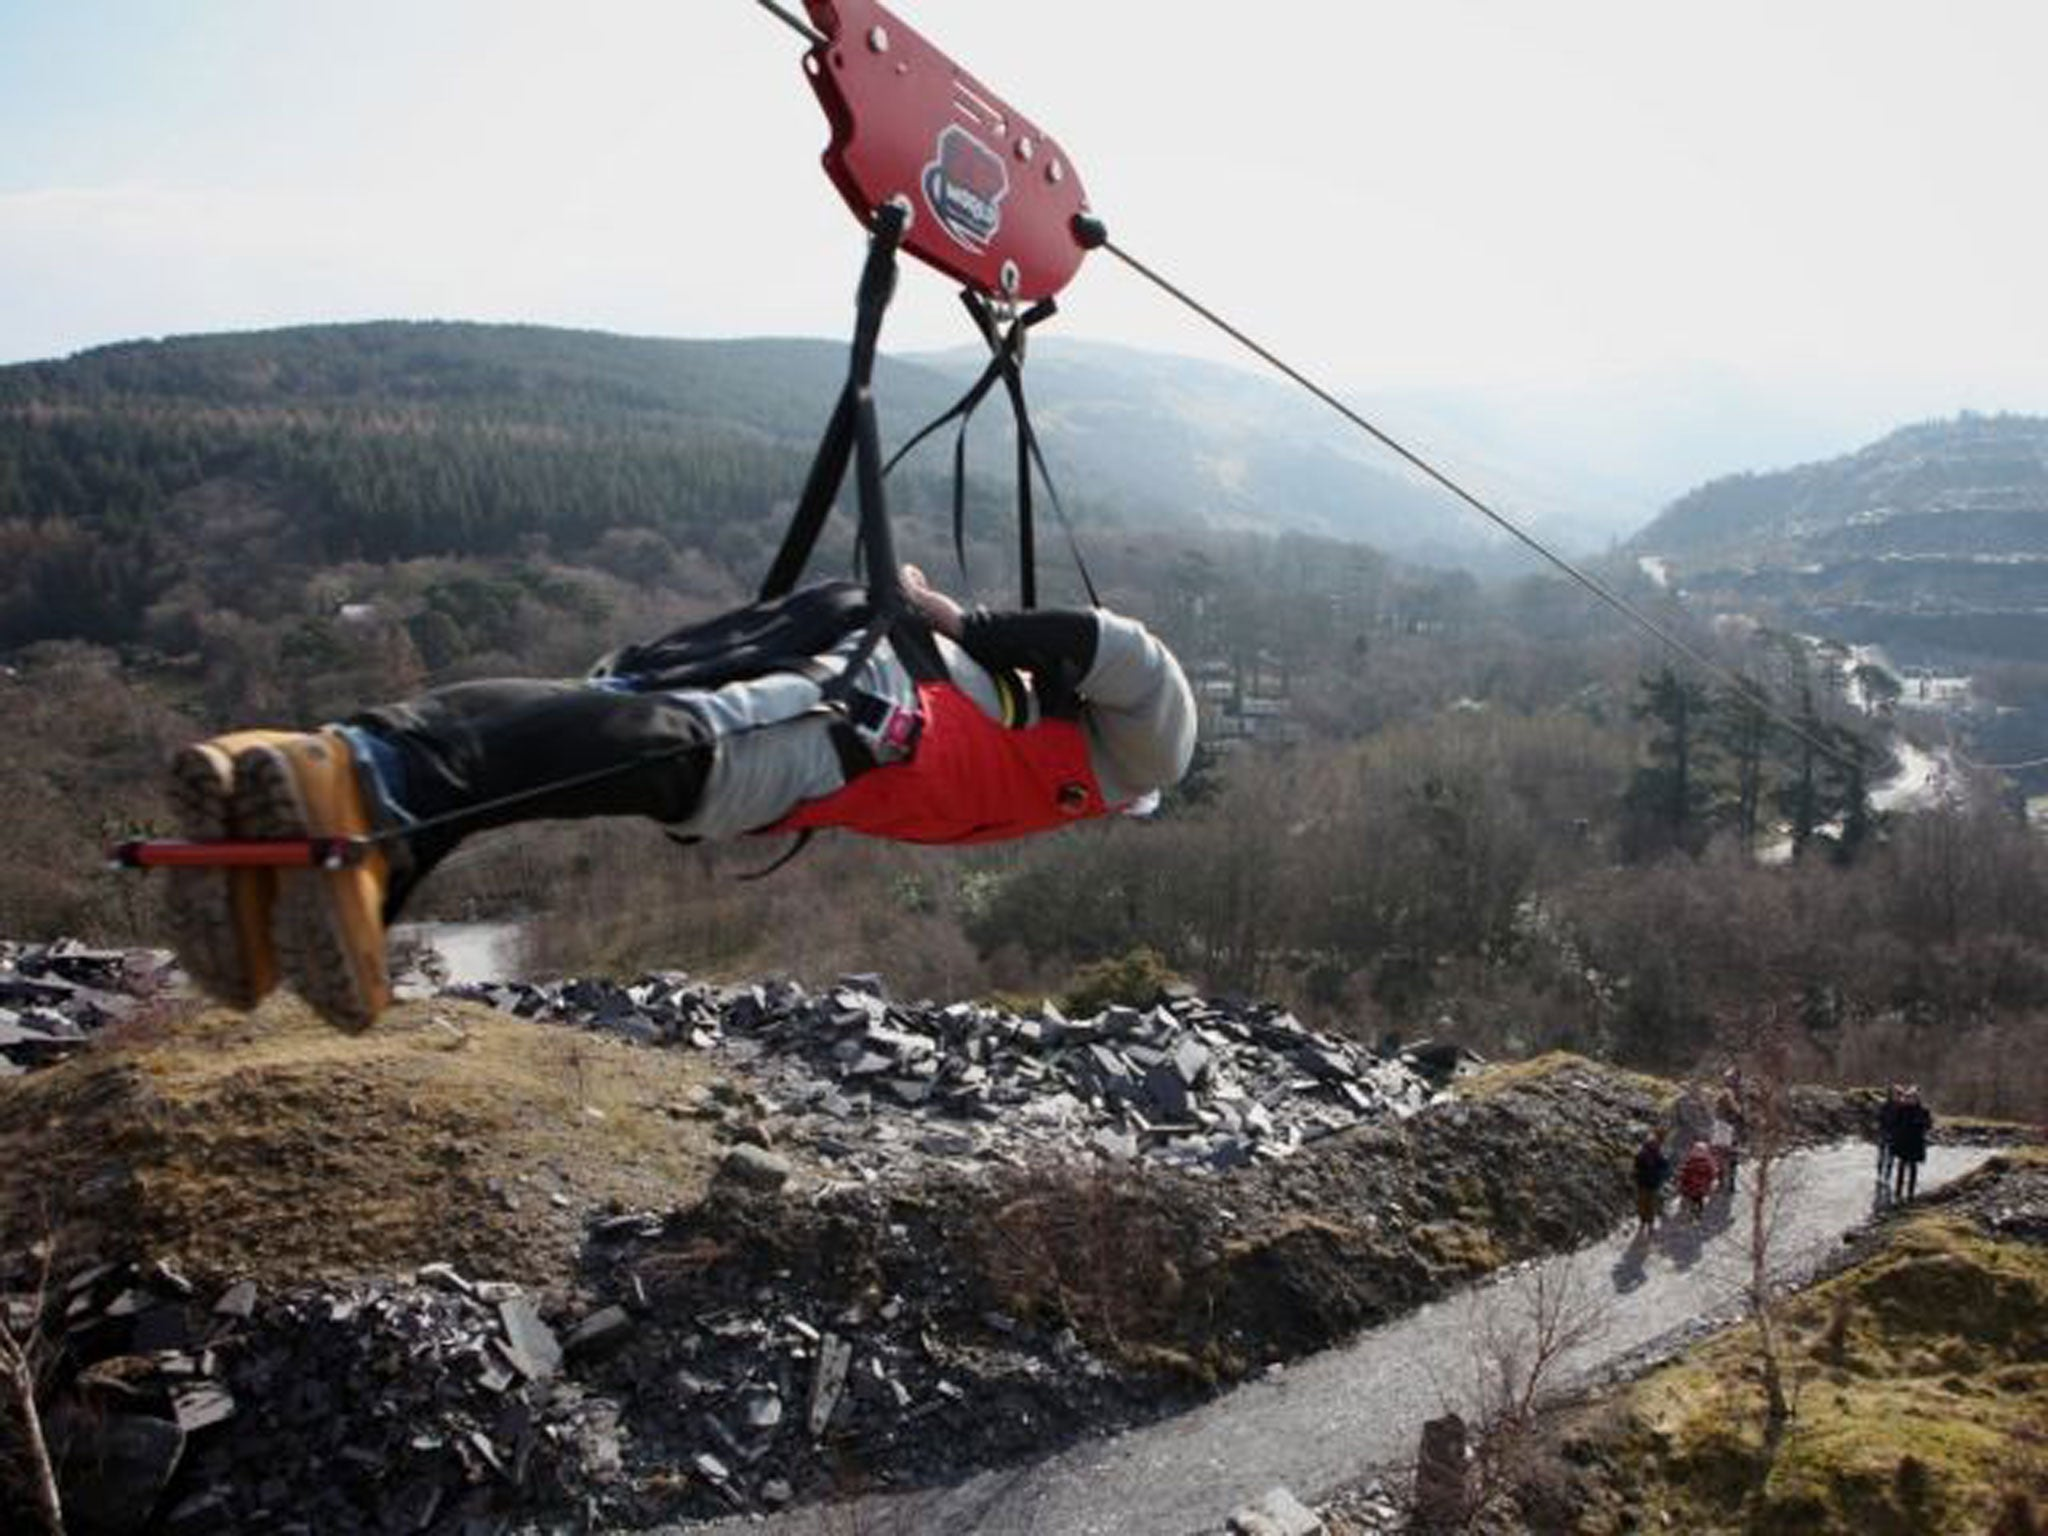 Mile-long zip wire opens in North Wales offering thrill-seekers an ...